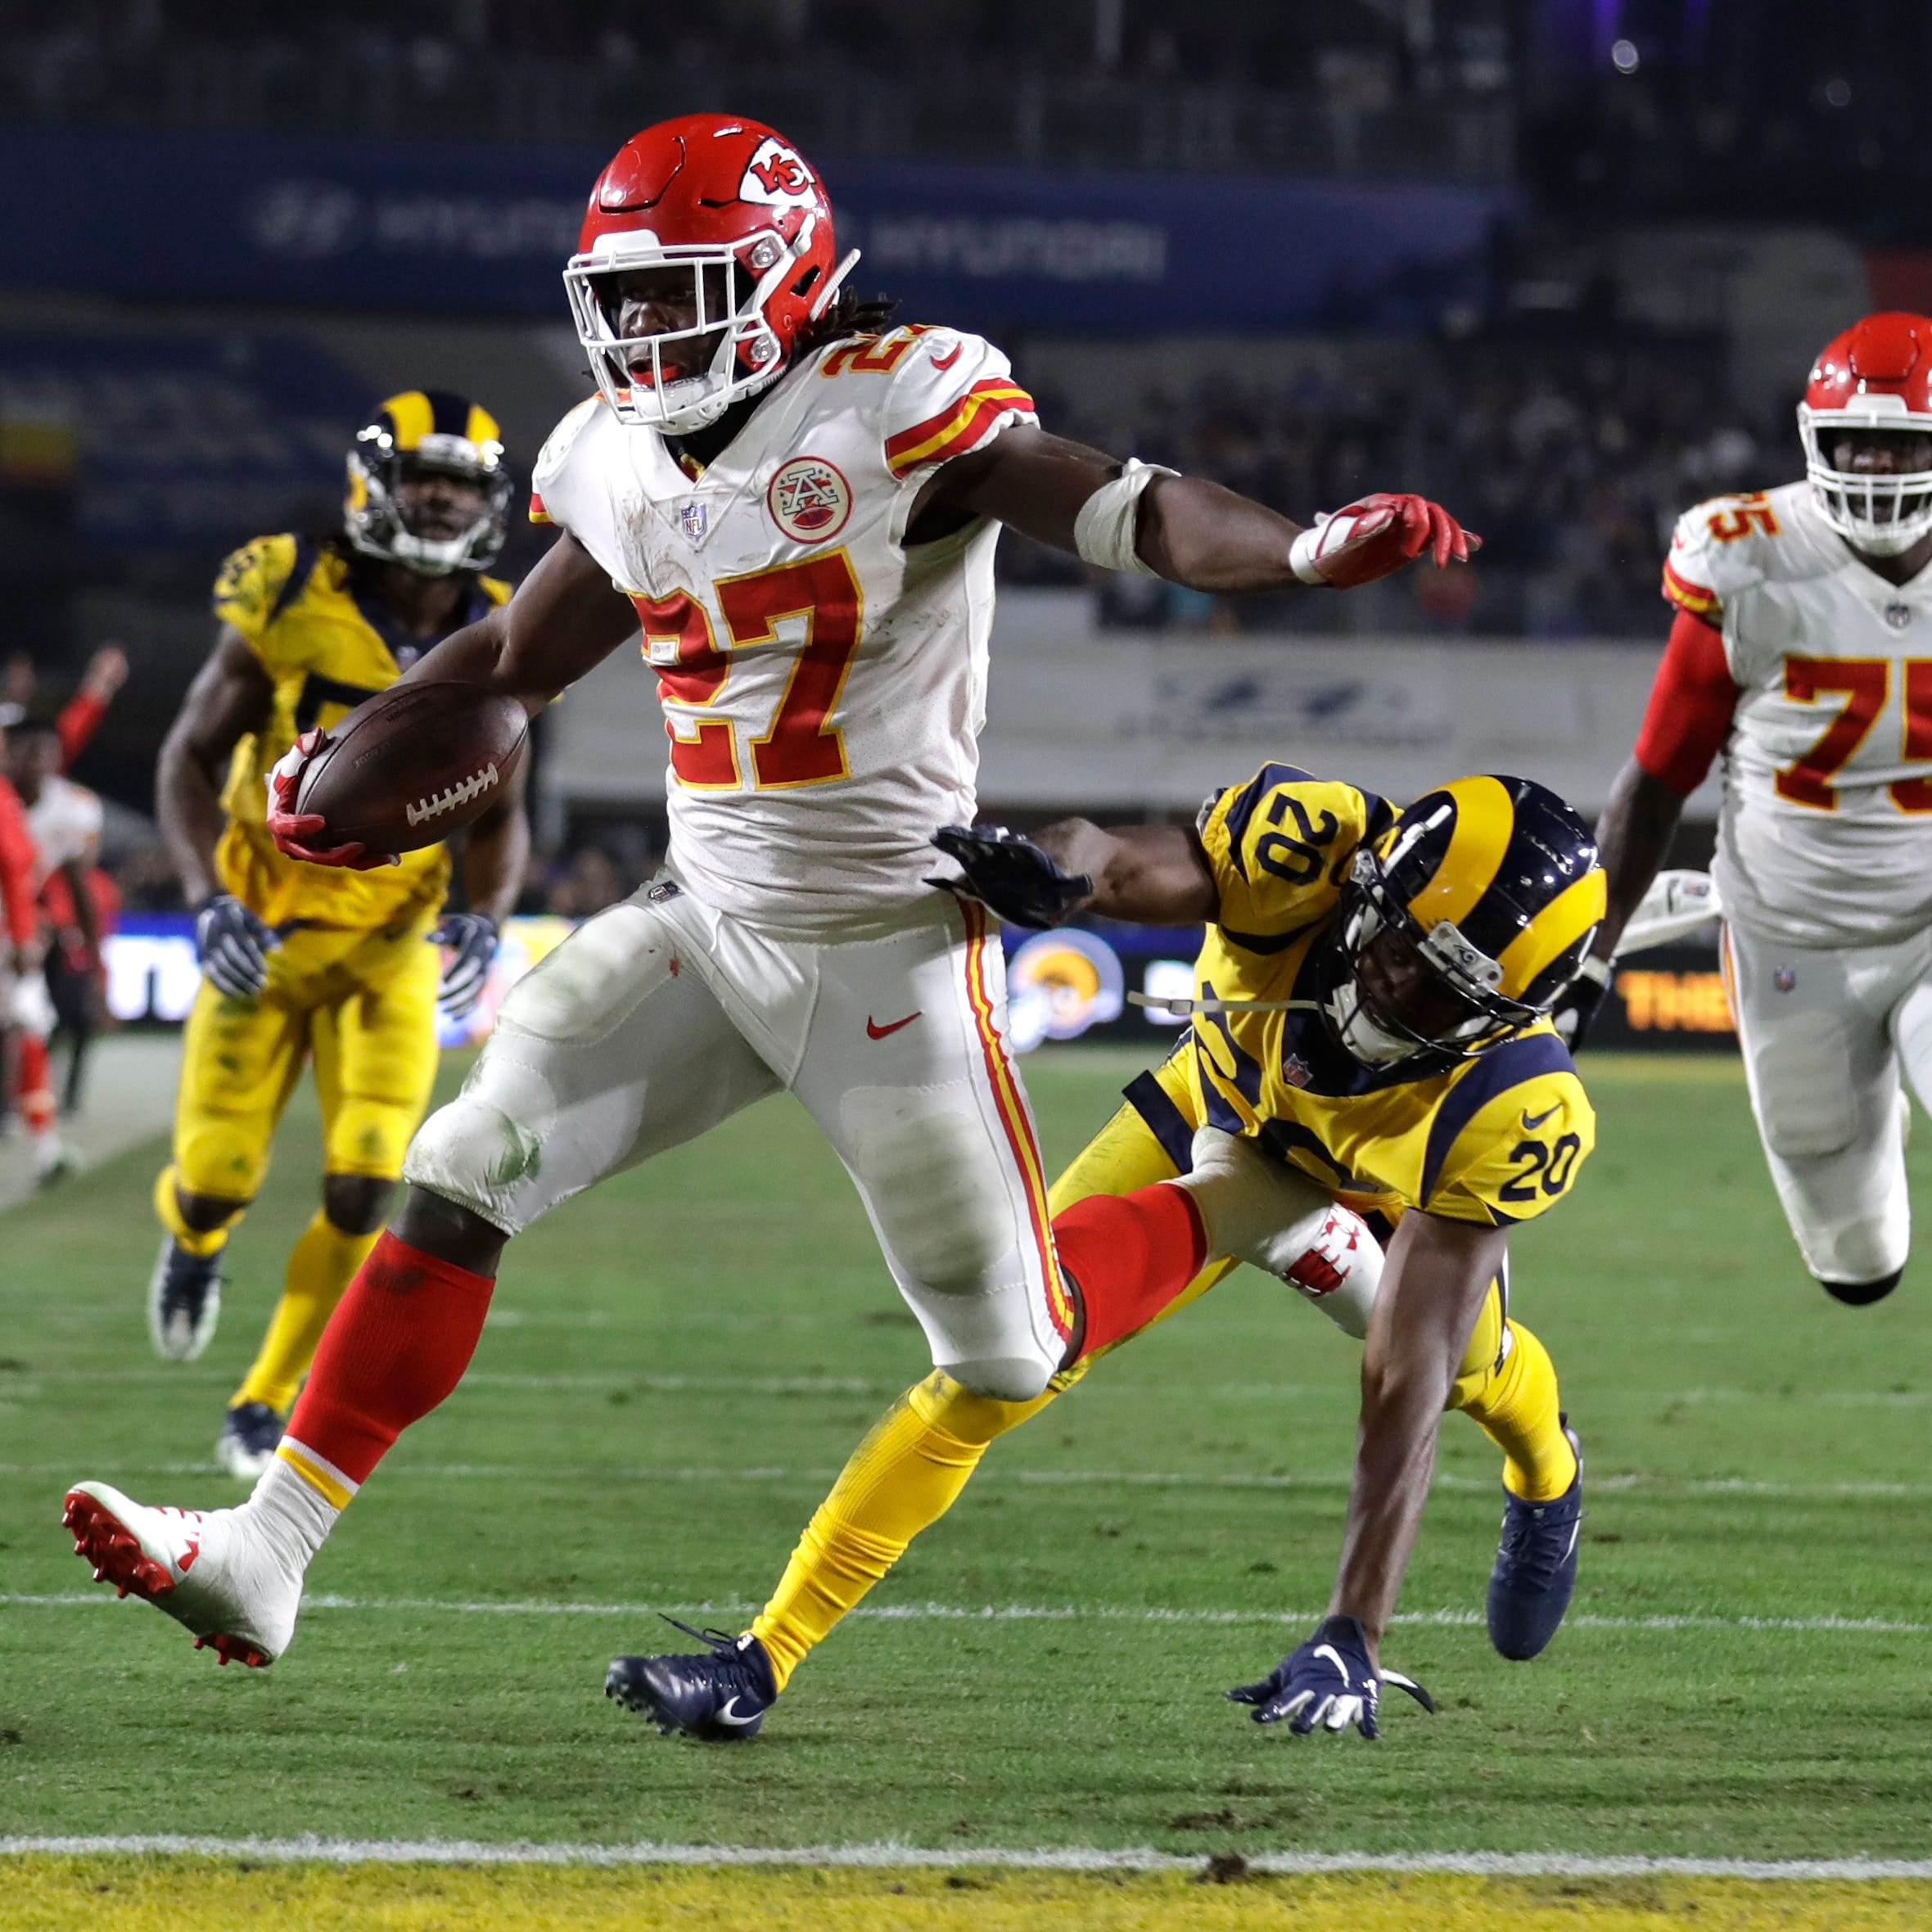 'It was crazy': Rams-Chiefs fireworks leave Lions defenders awestruck